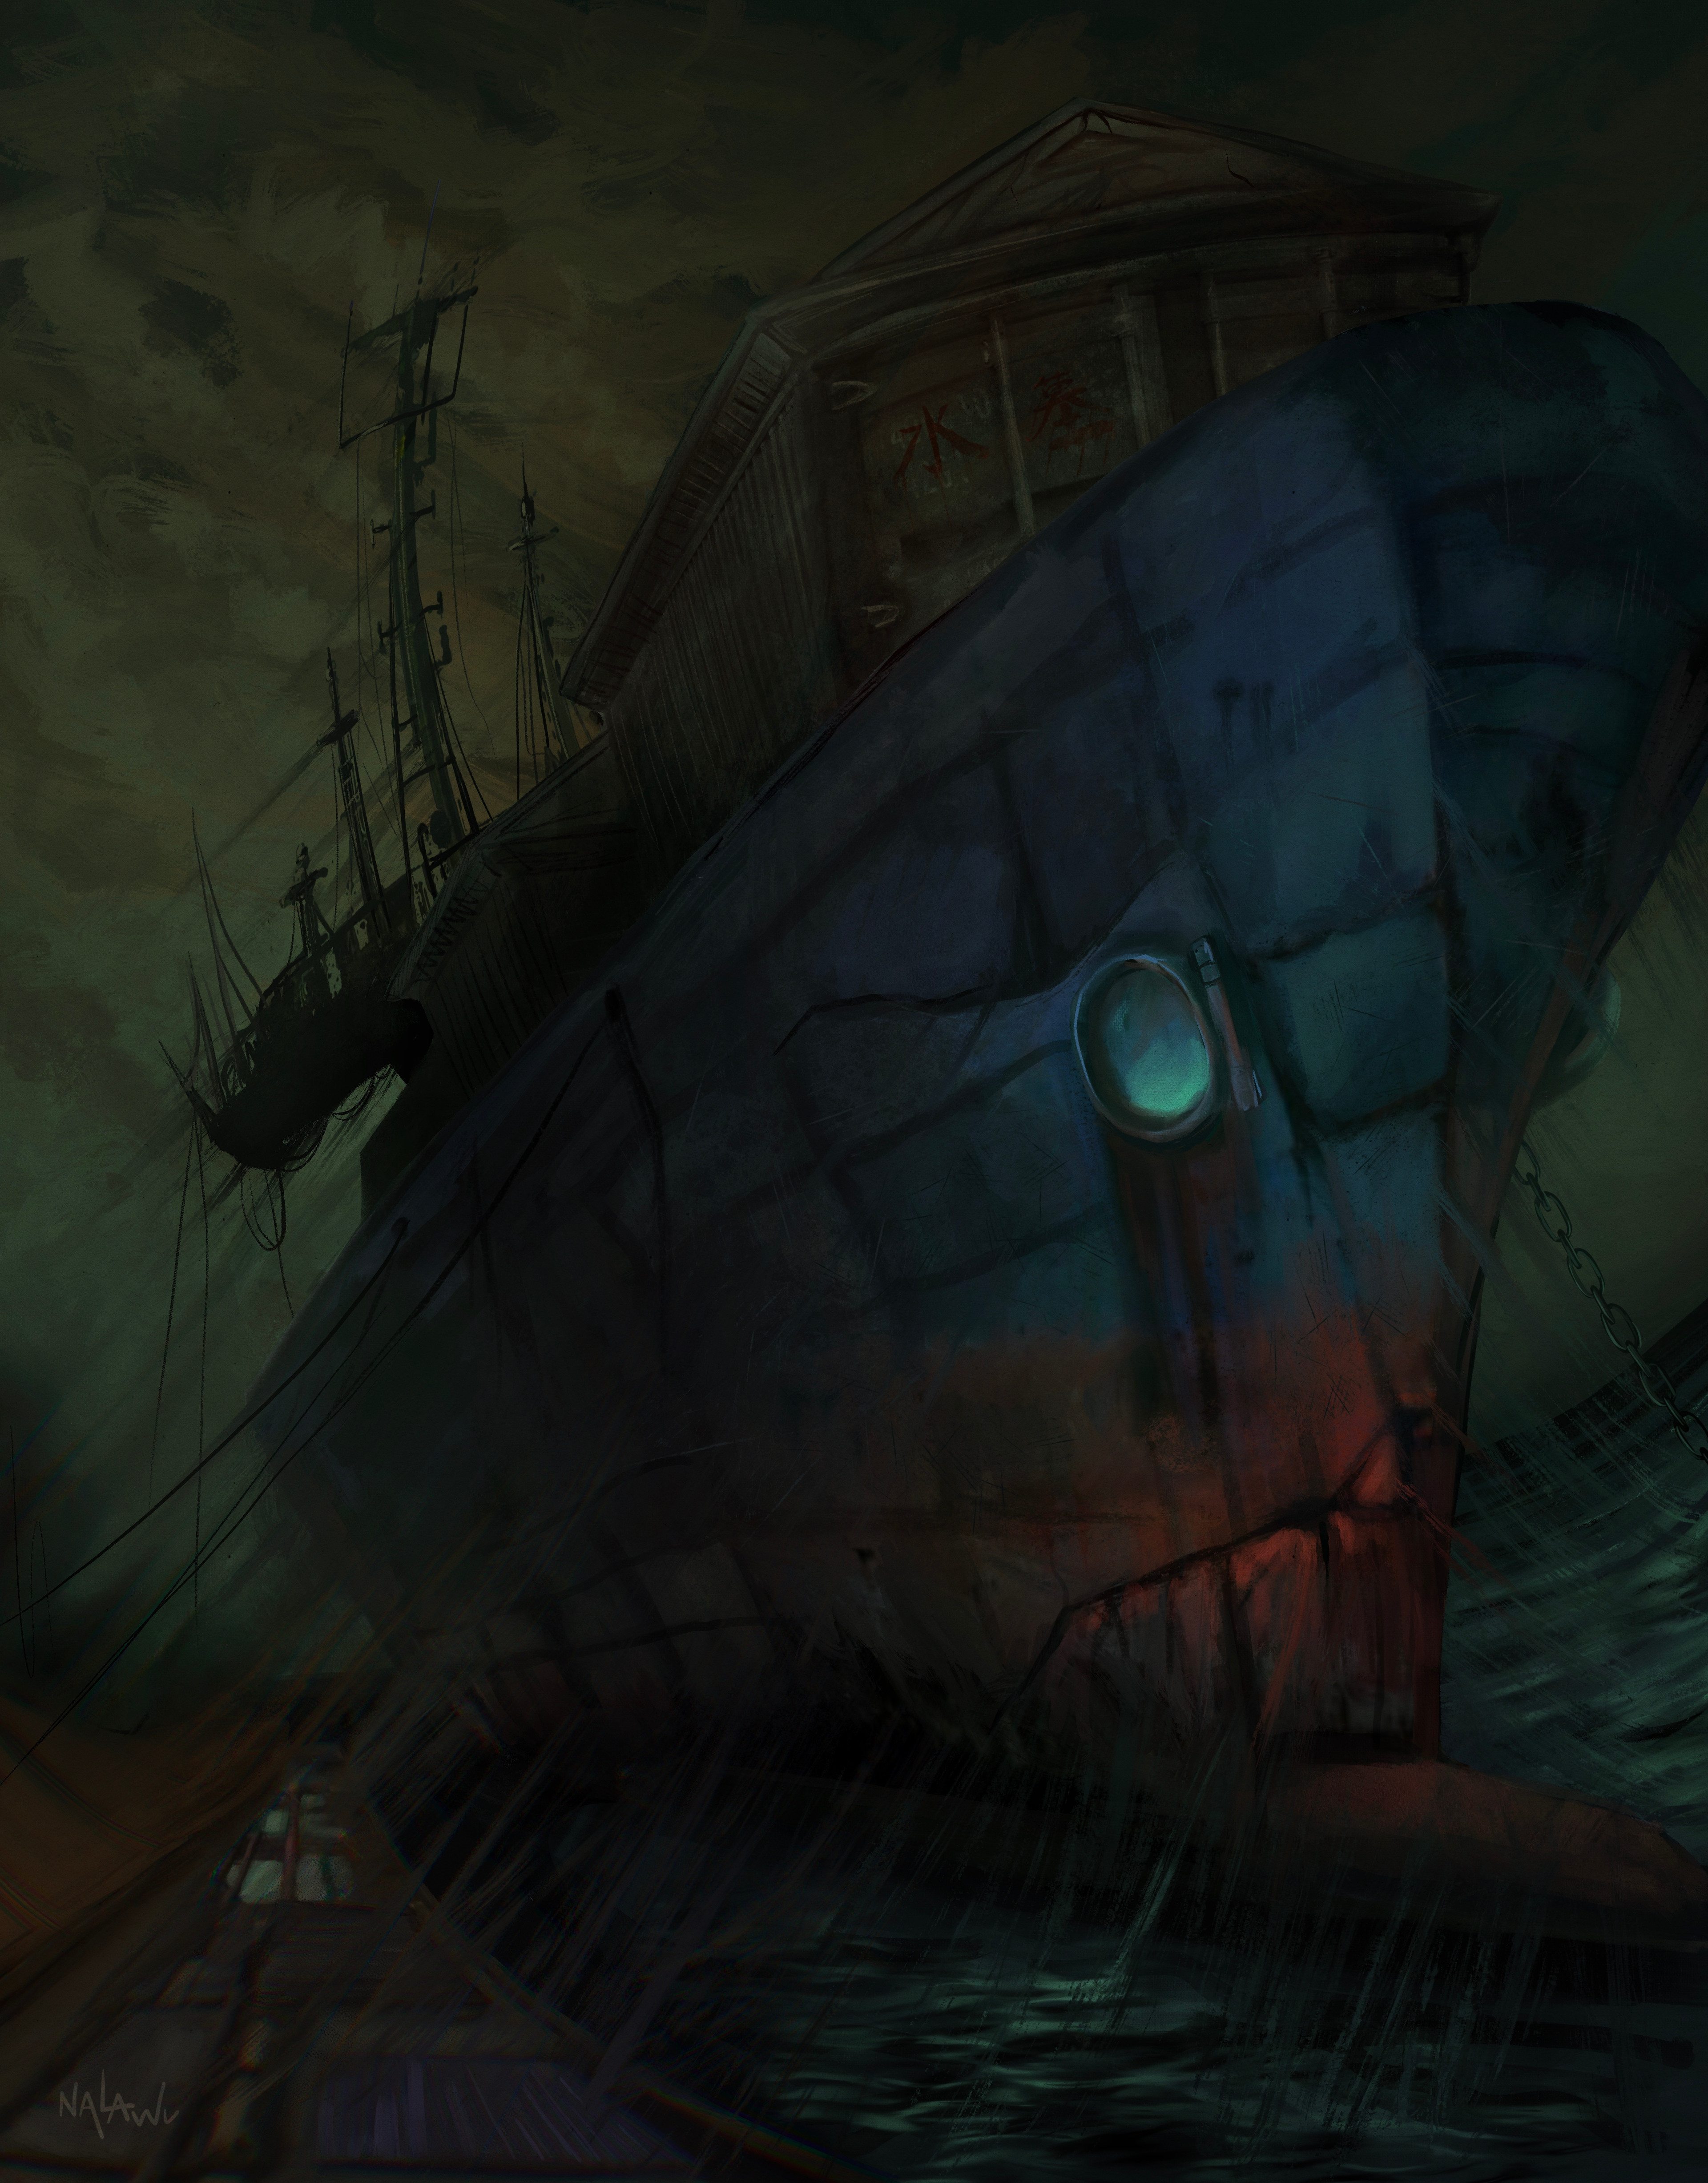 An illustration of an oppressively large container ship that has fallen into disrepair. The ship, silhouetted against a sickly grey-green sky, seems to be sucking in the entire world as it stares down at you through its glowing eye-like porthole.